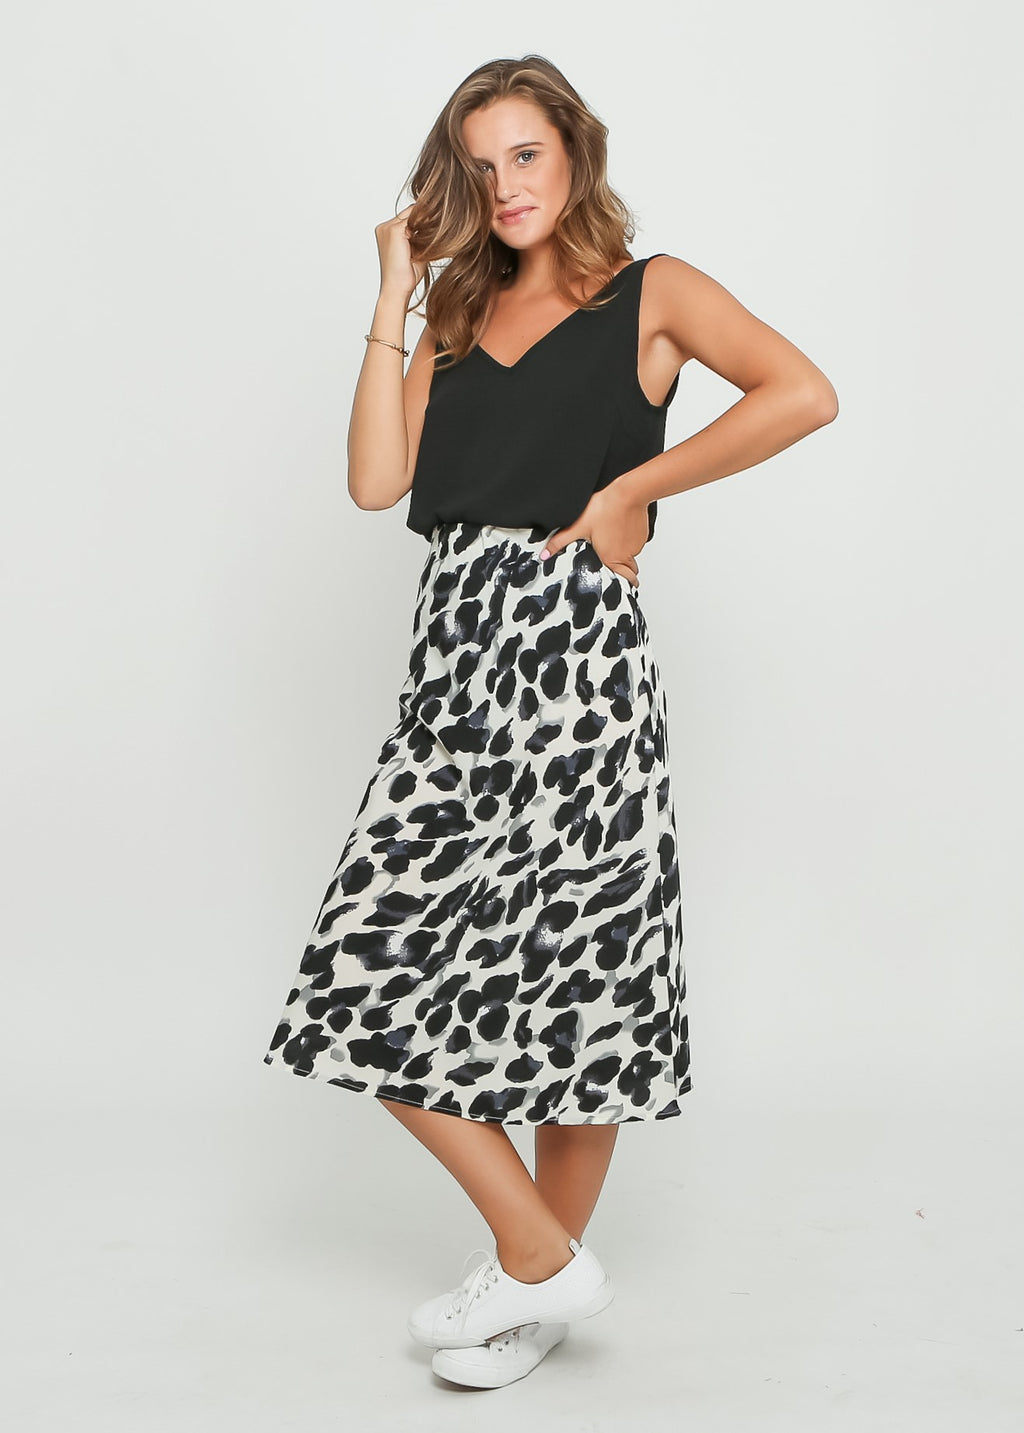 ALLA SKIRT - MIXED ANIMAL